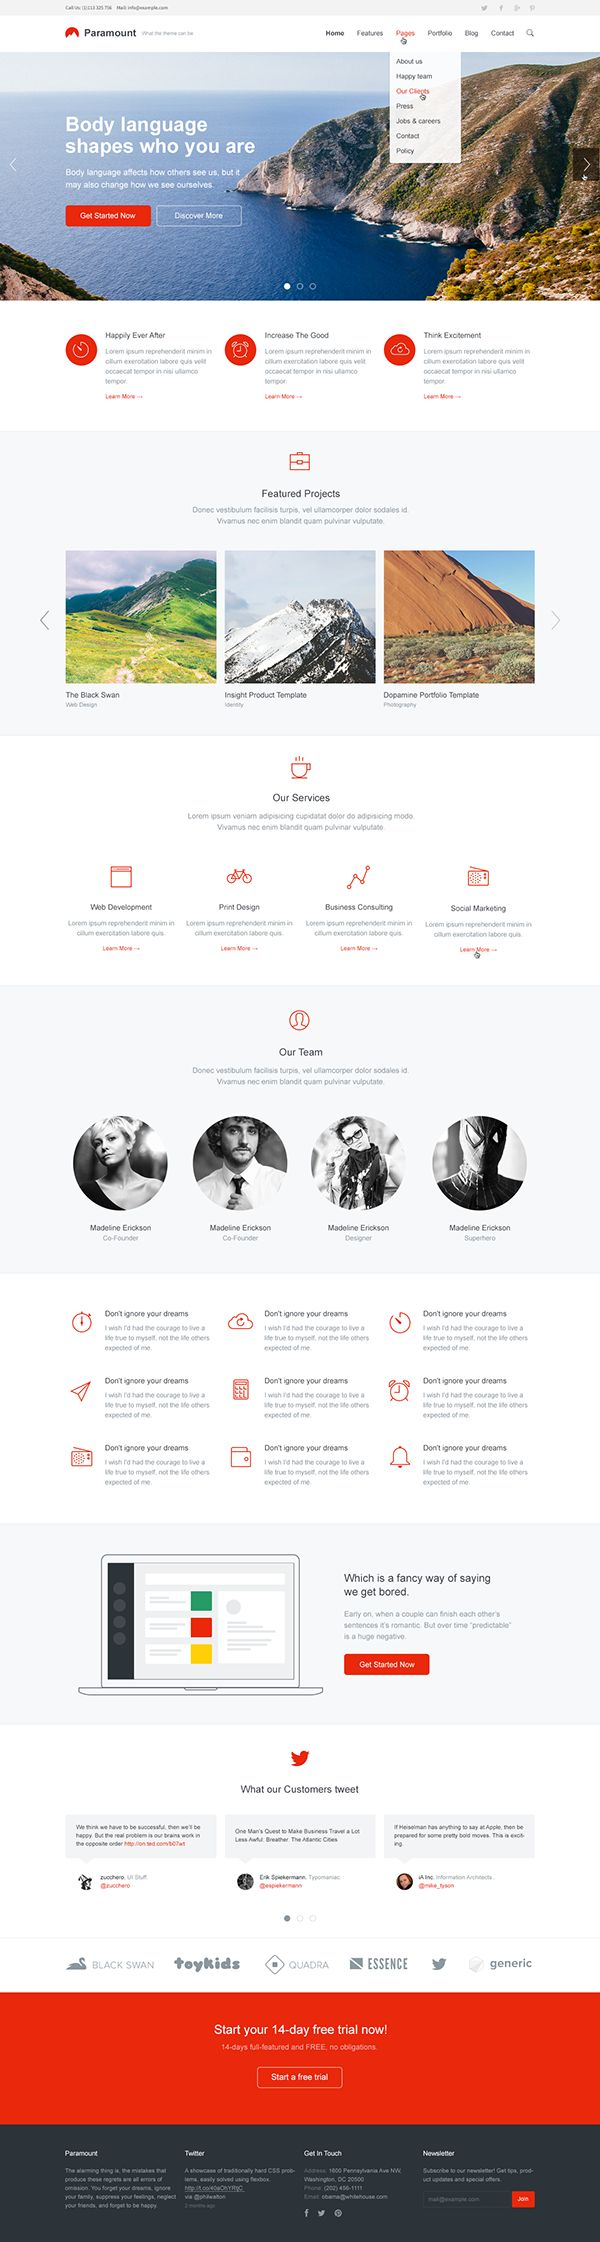 Clean Site Layout | Paramount — Responsive HTML Template on Behance